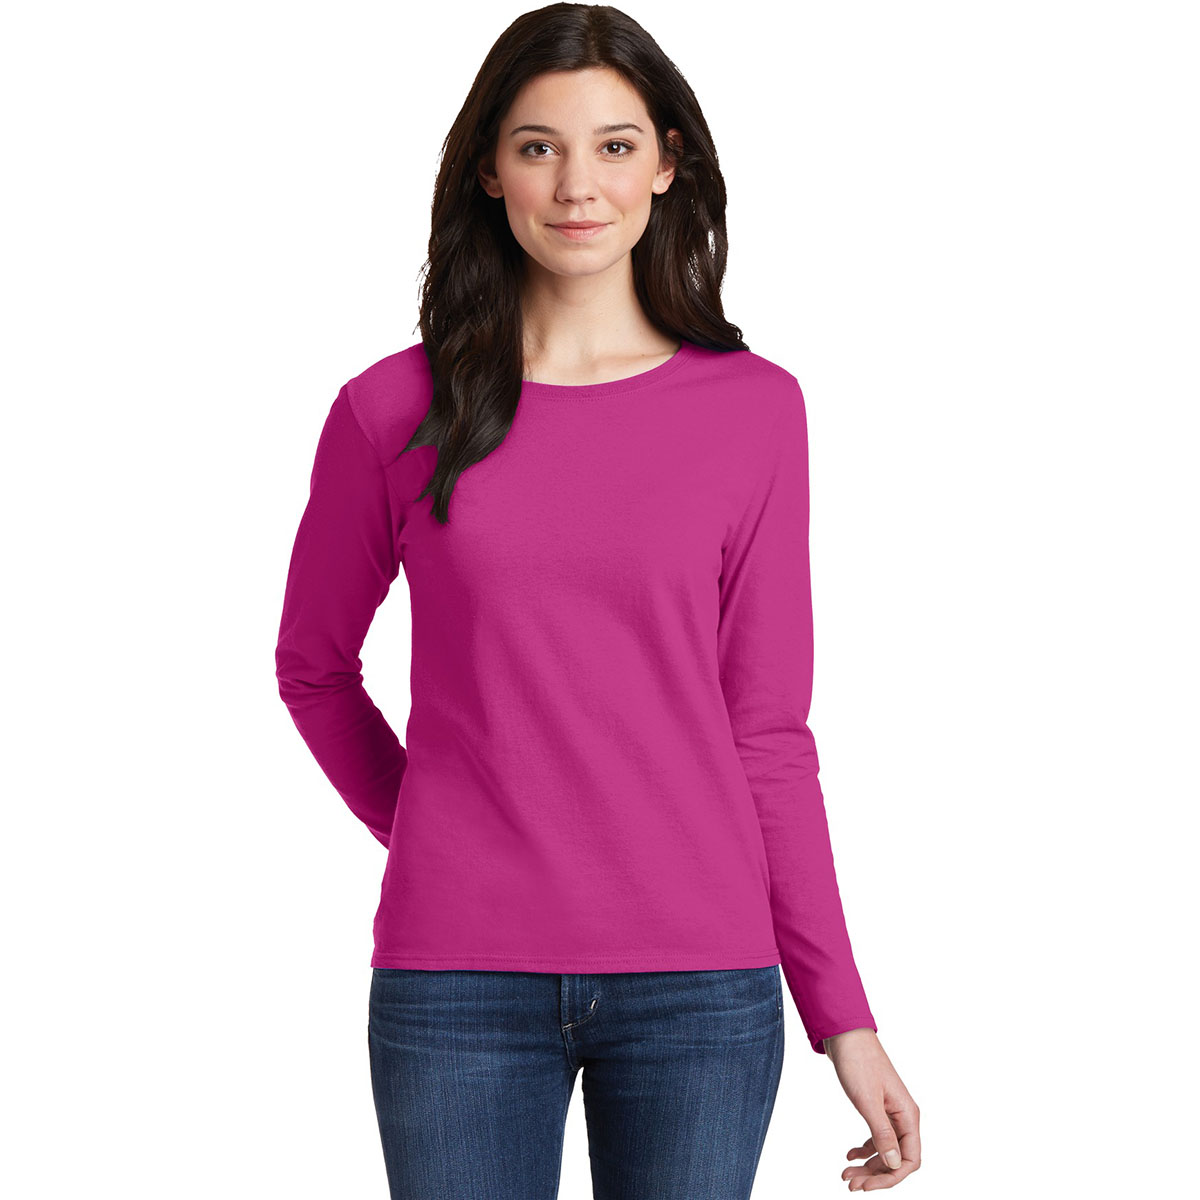 5a9d9d973076 Gildan 5400L Ladies Heavy Cotton Long Sleeve T-Shirt - Heliconia. 5400L- Heliconia